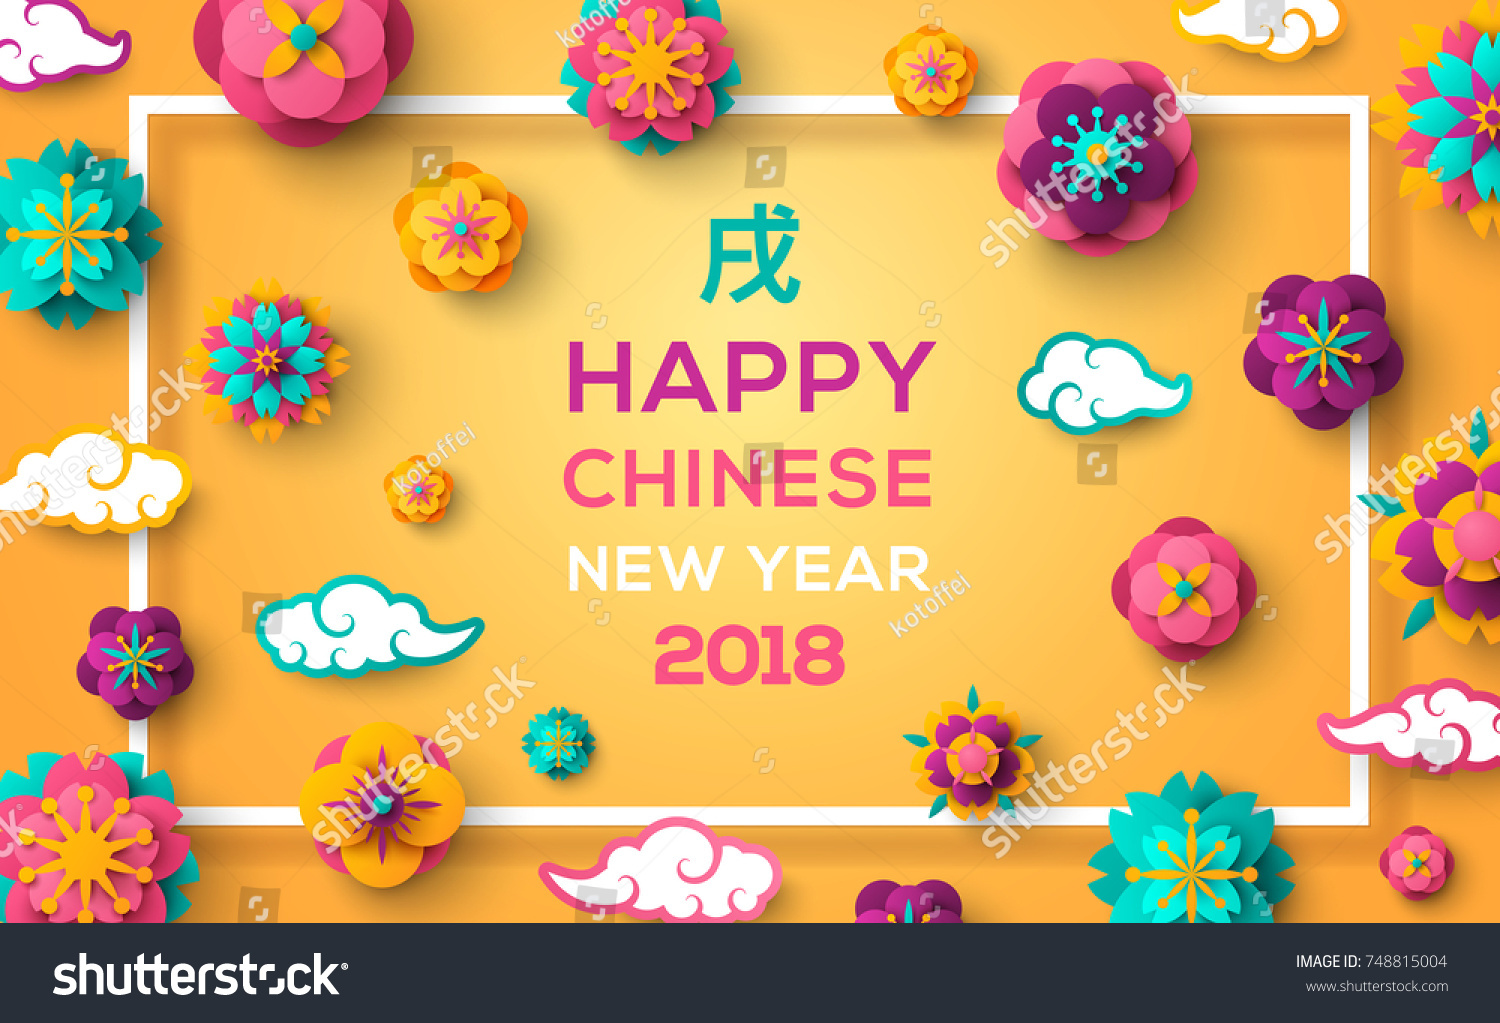 how to say chinese new year in mandarin